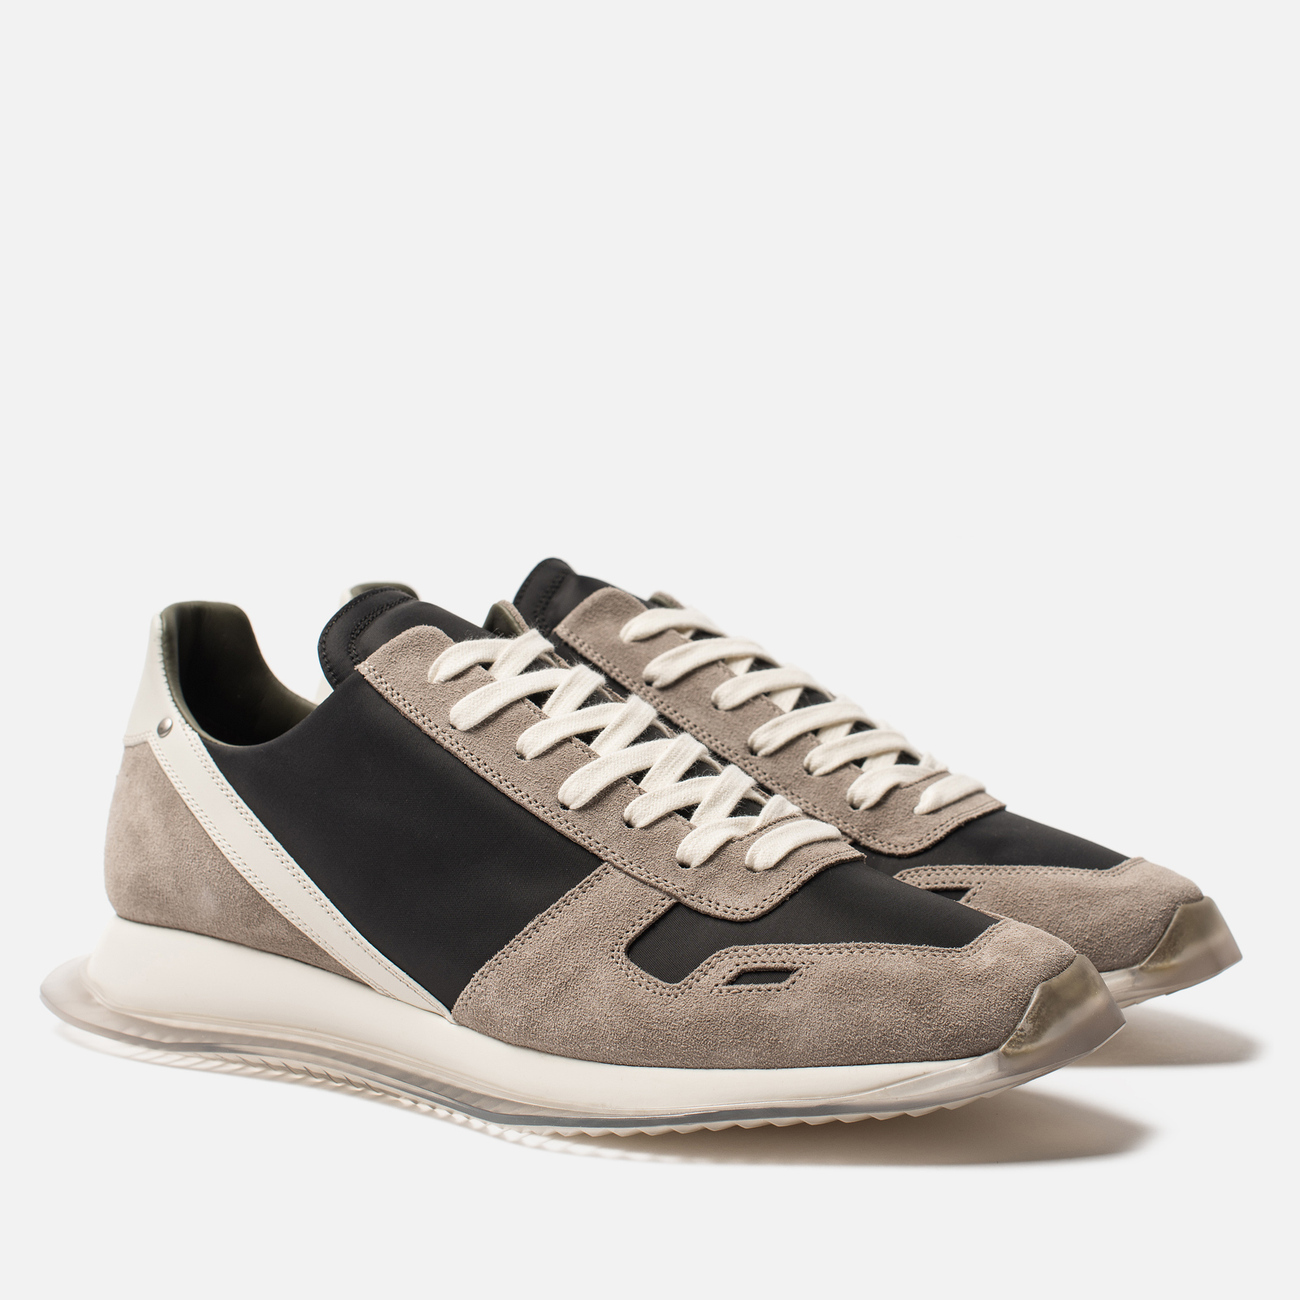 Мужские кроссовки Rick Owens New Vintage Runner Lace Up Tech Canvas/Velour Suede Black/Clear Sole